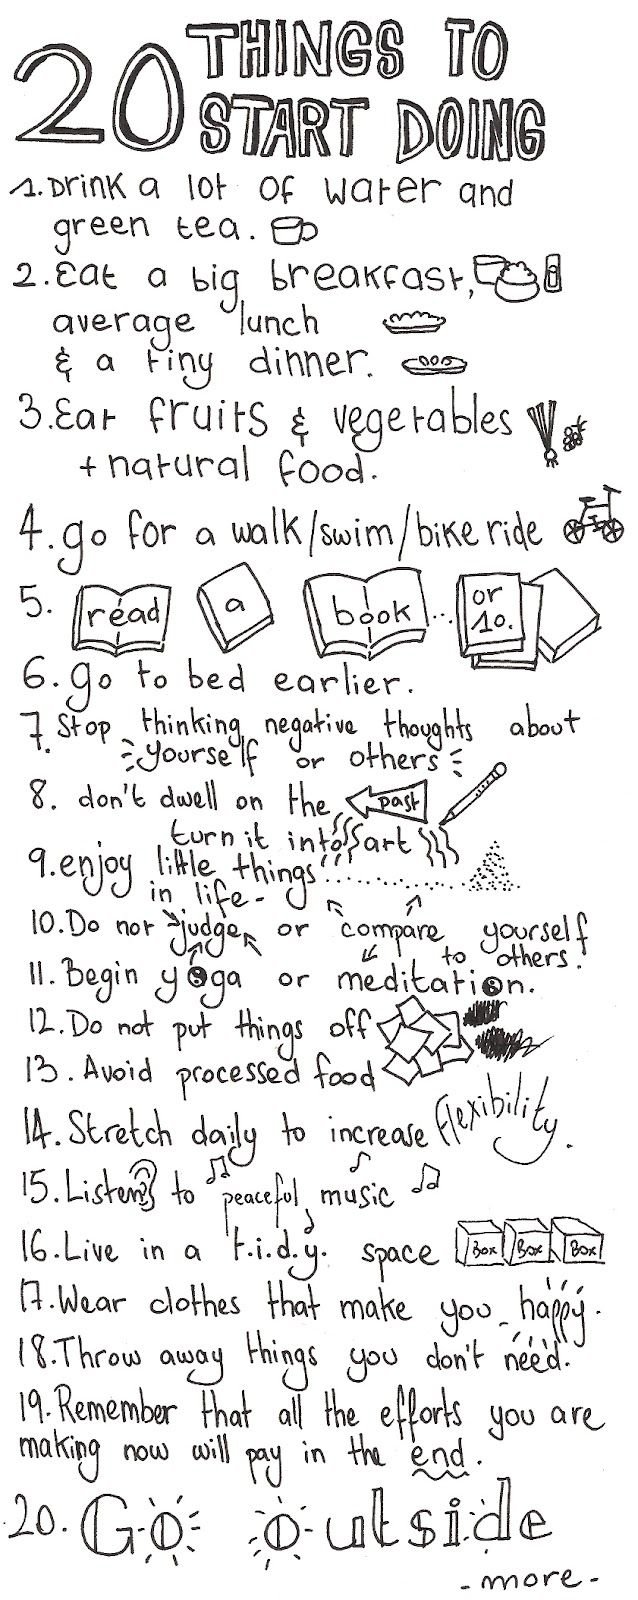 To do list for self care